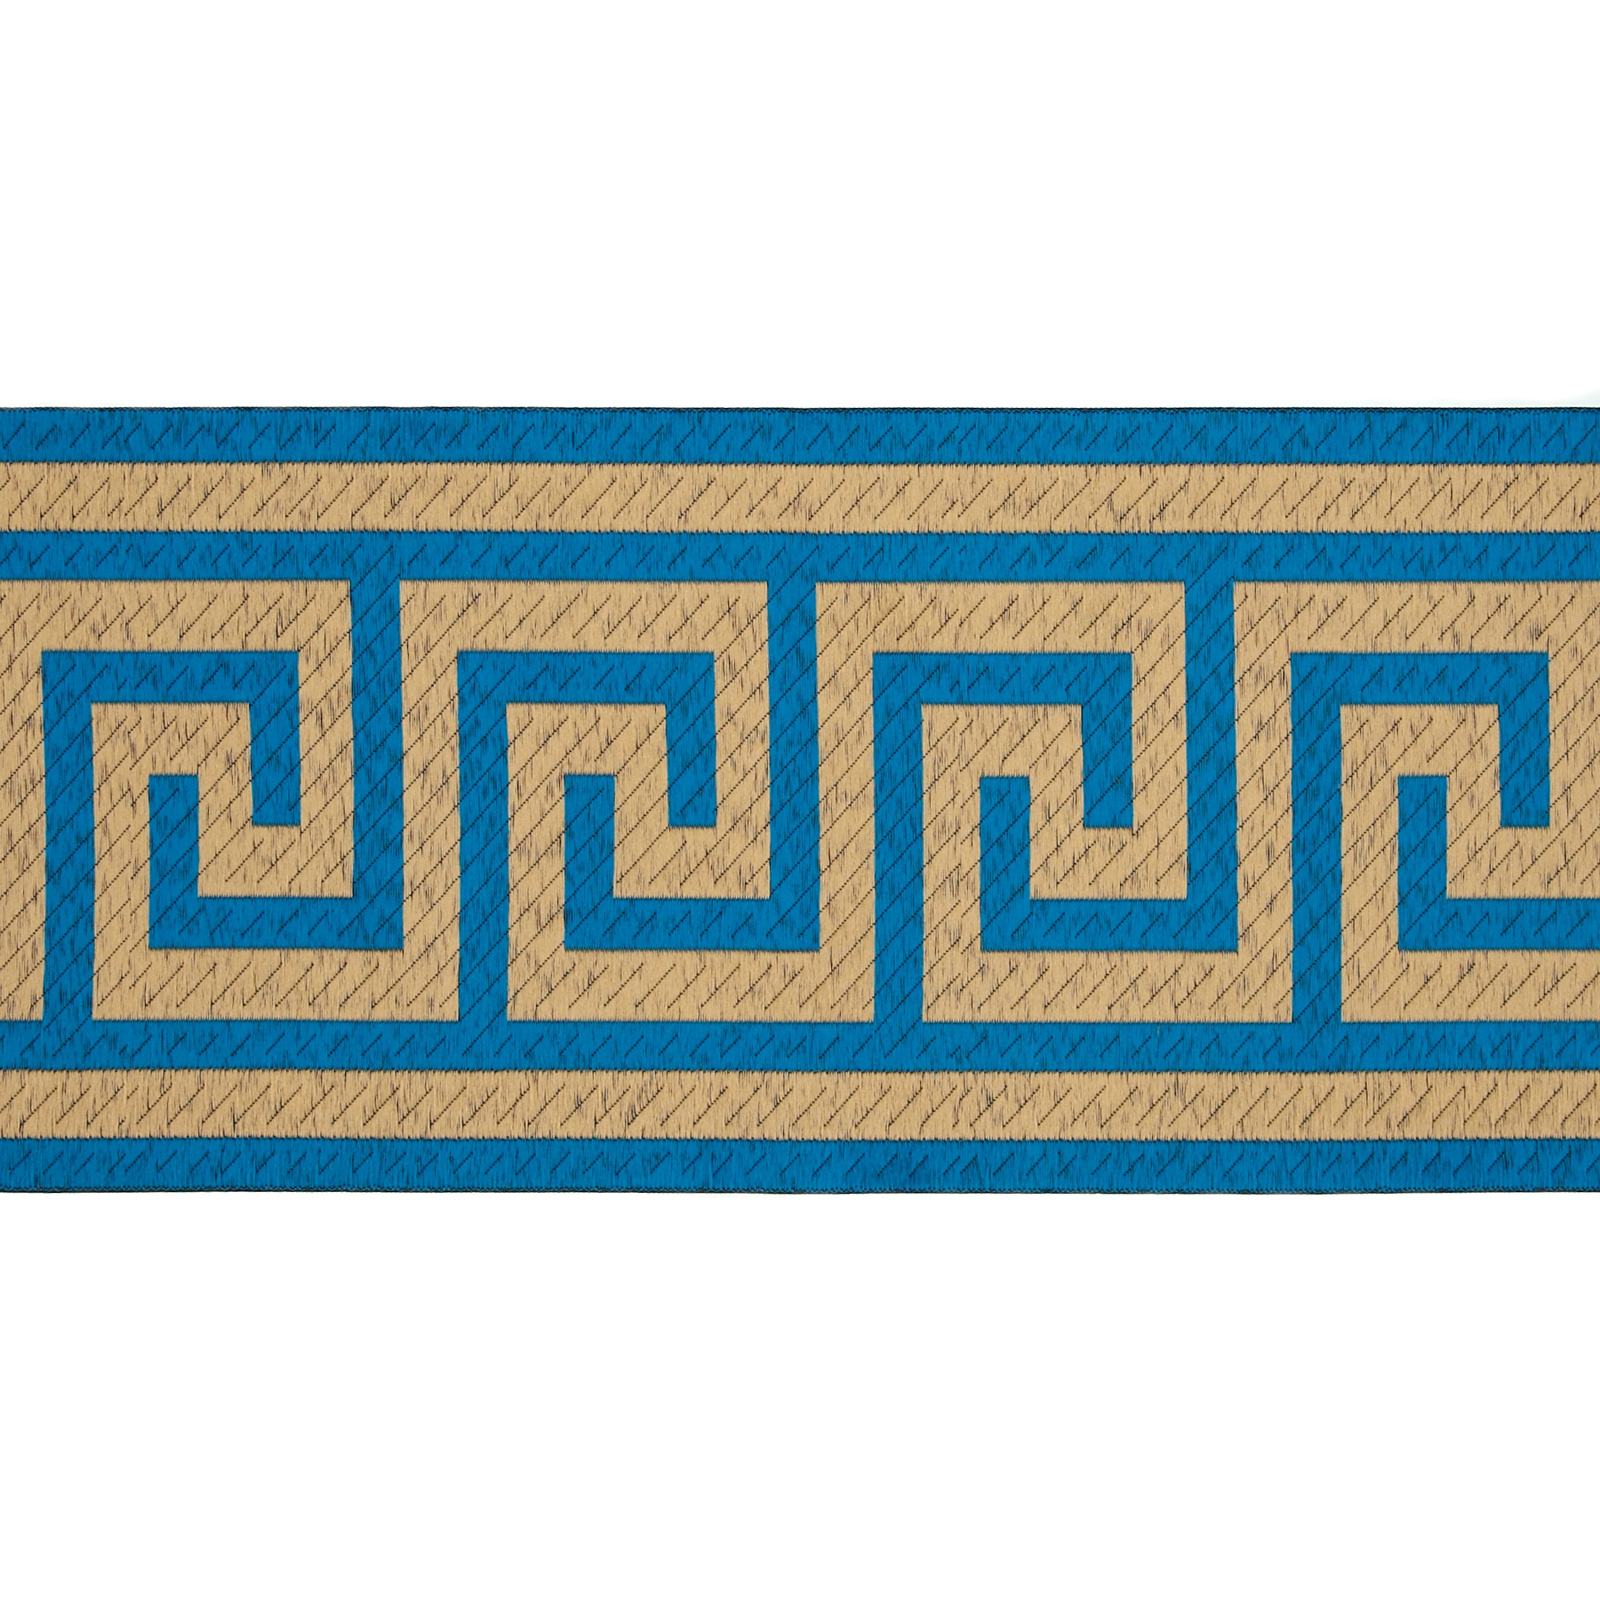 INOpets.com Anything for Pets Parents & Their Pets 6'' Woven Home Decor Greek Key Tape Teal